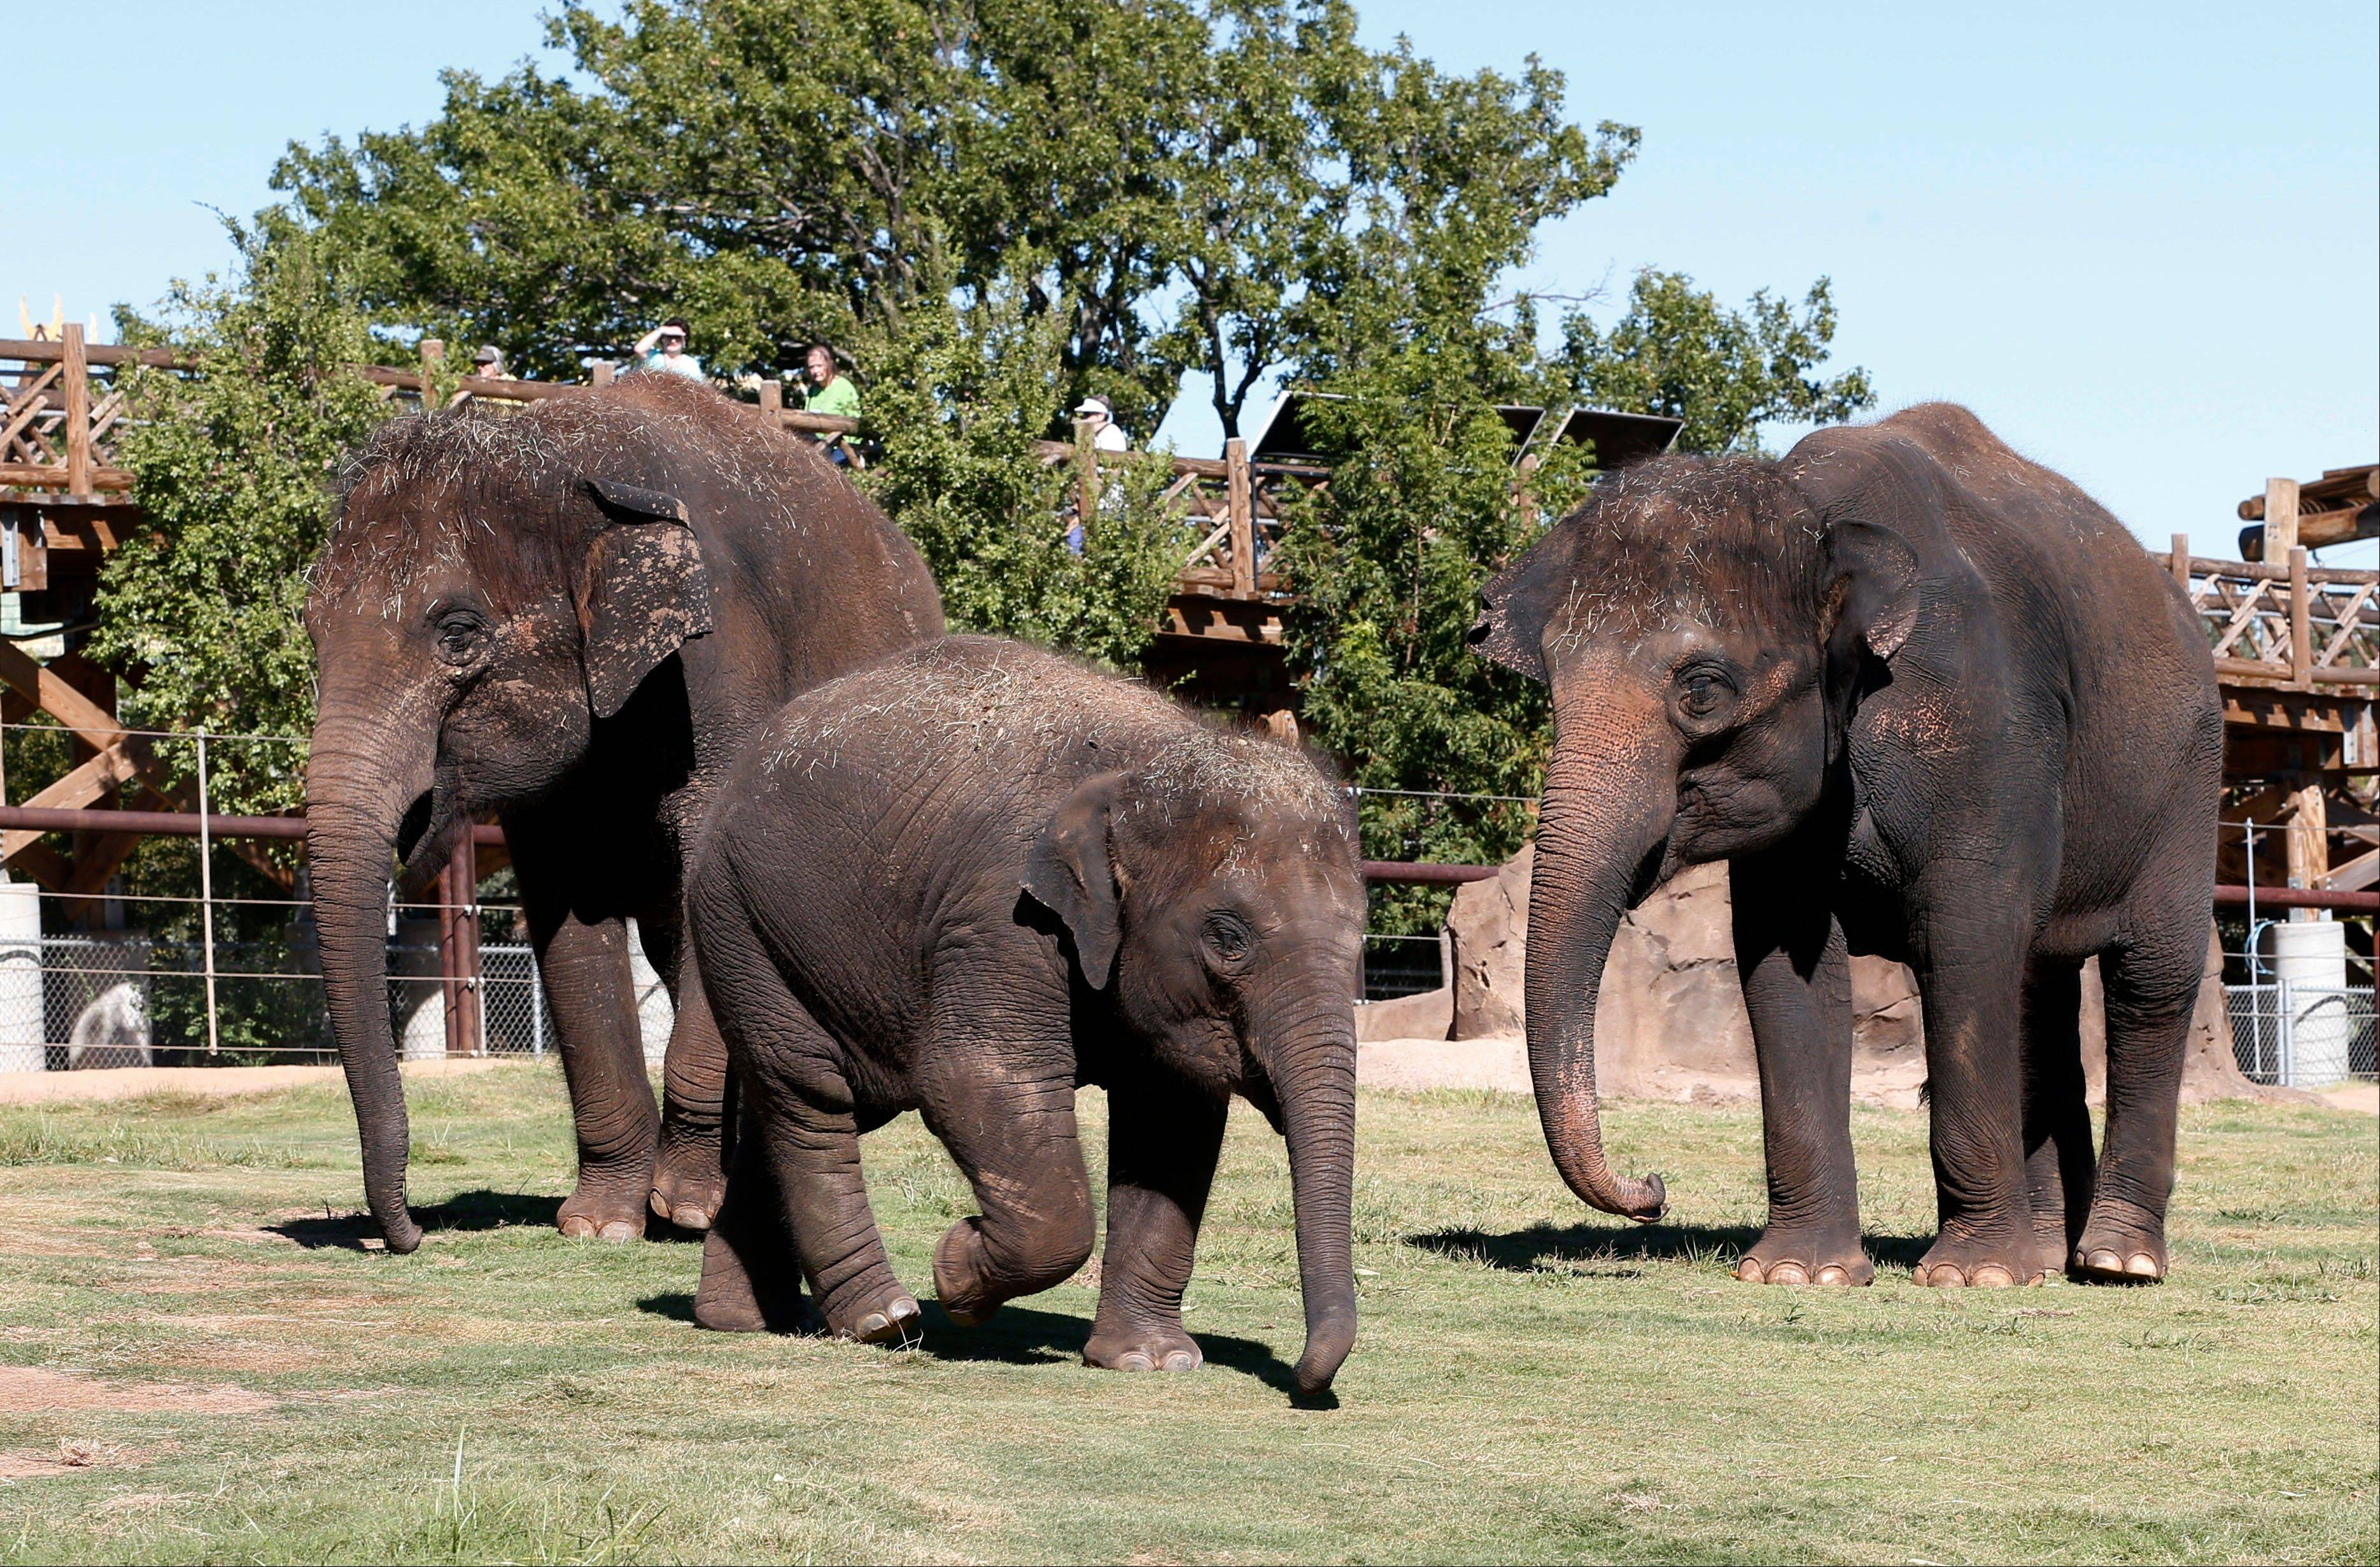 Three Asian elephants, Chandra, left, Malee, center, and Asha, right, walk through their enclosure Tuesday in the Oklahoma City Zoo in Oklahoma City. An aggressive elephant at the Springfield Zoo killed a caretaker on Friday.